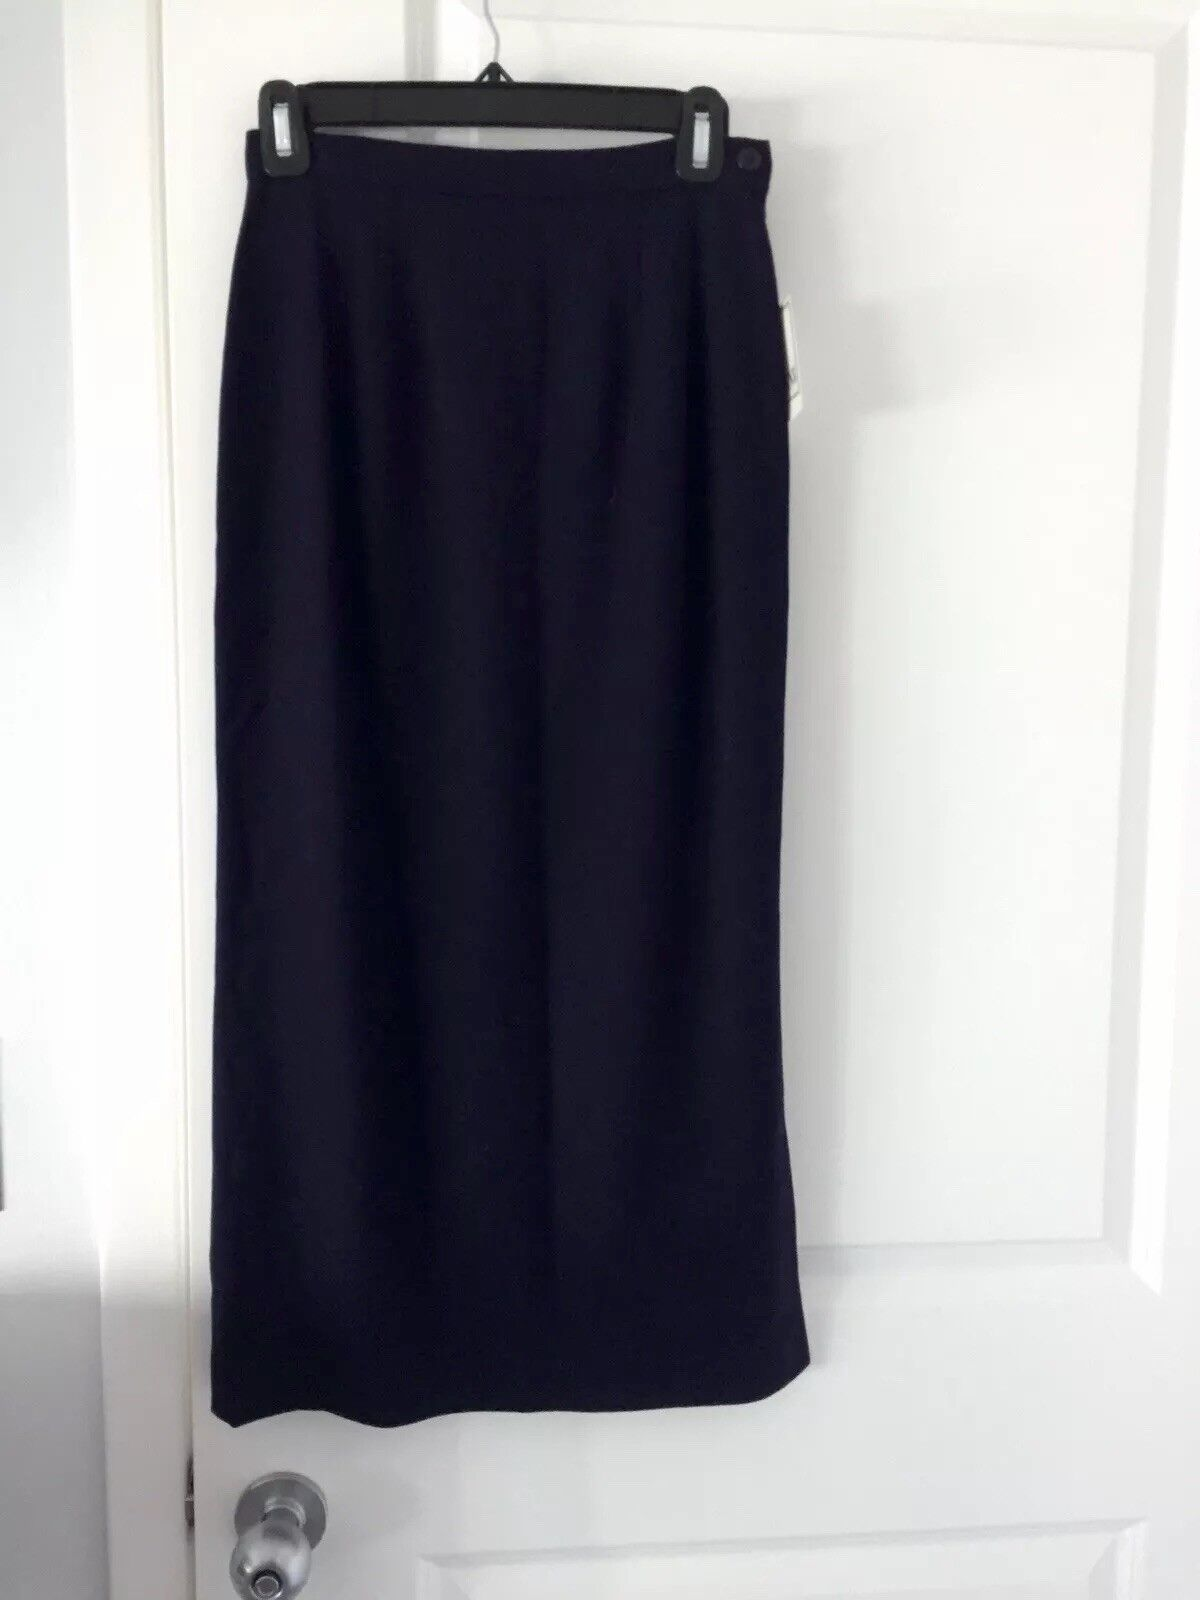 Gianni Navy bluee Skirt Fully Lined Side Split Left Side  Size 4P Retail  NWT